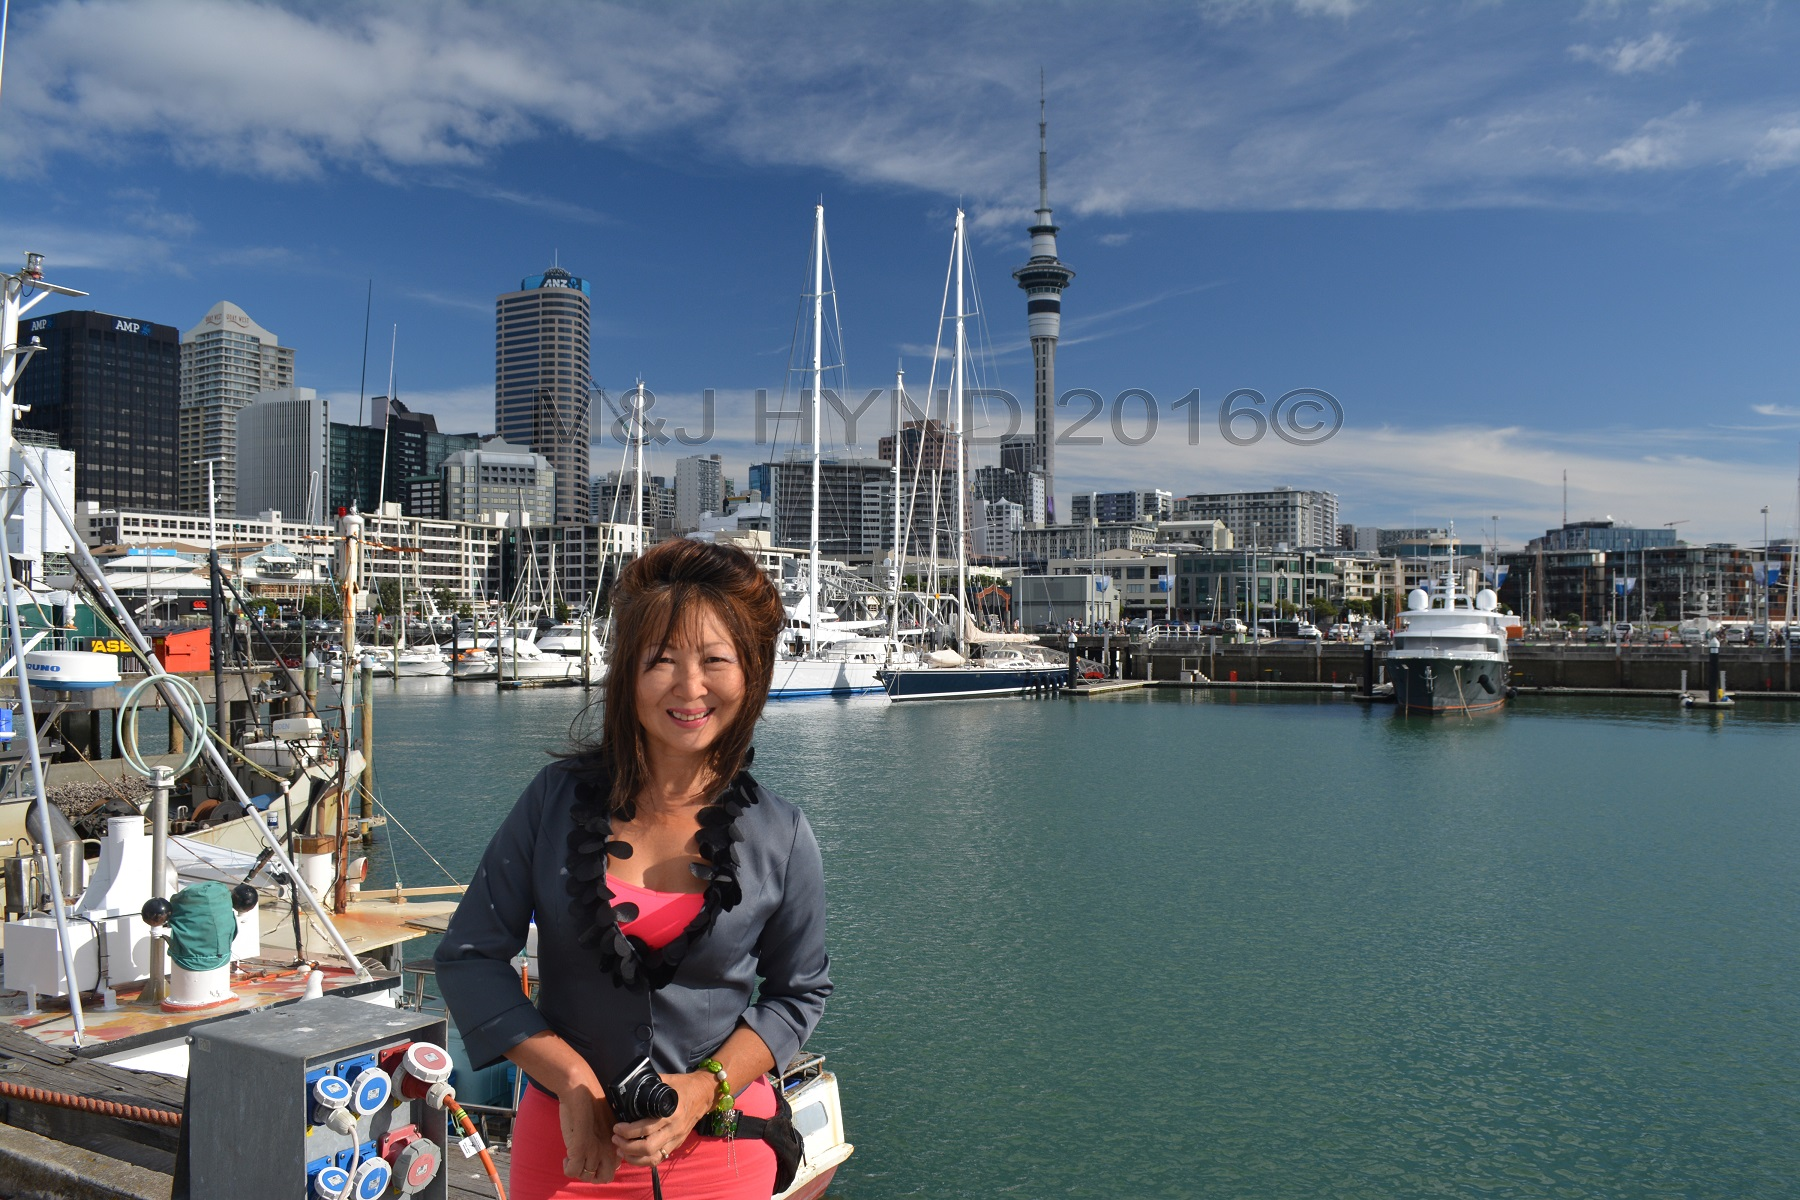 Viaduct Harbour Skytower, Seafood Festival, Auckland, NZ